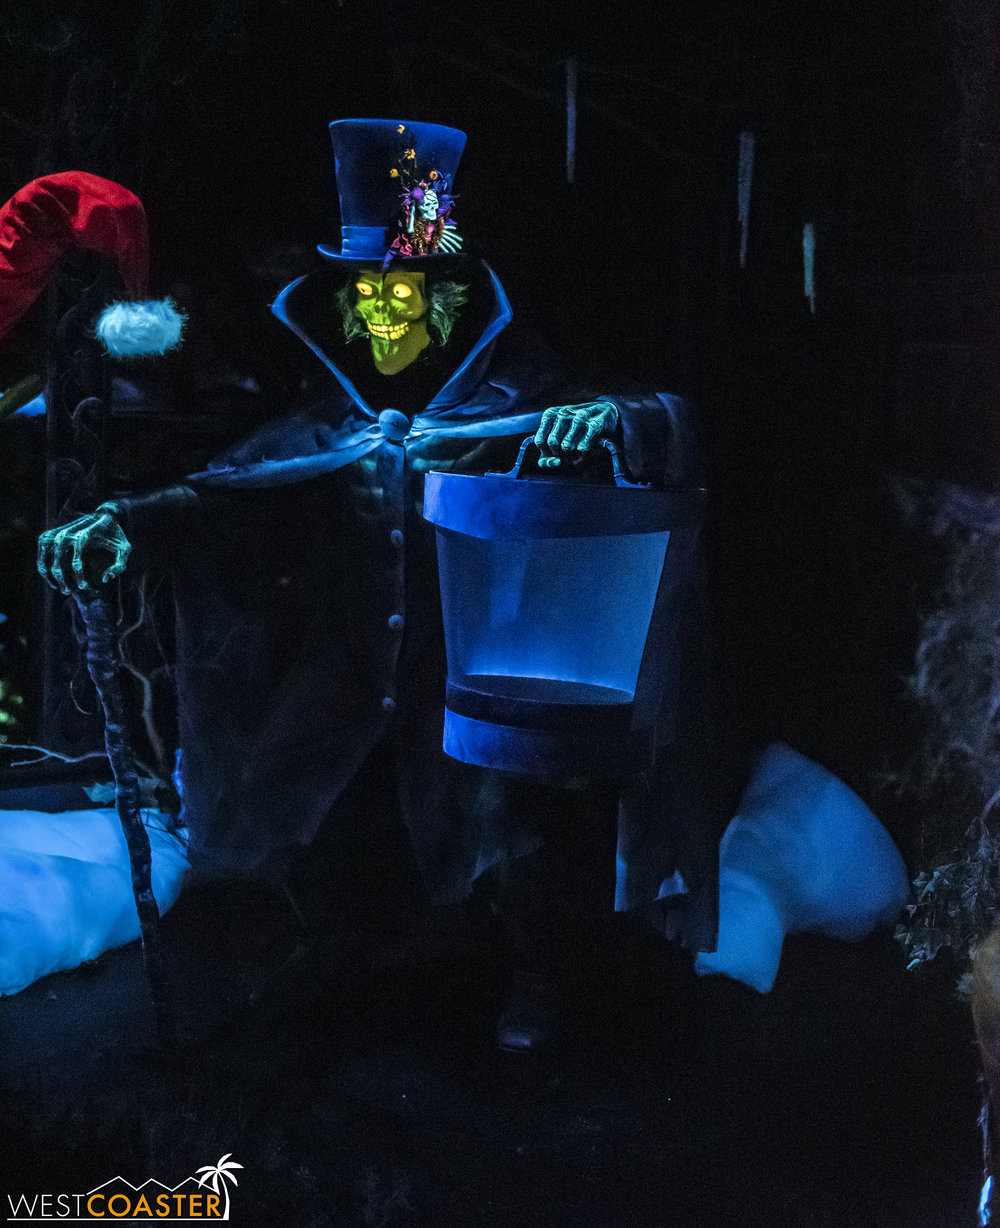 The Hatbox Ghost is in his holiday spookiest.